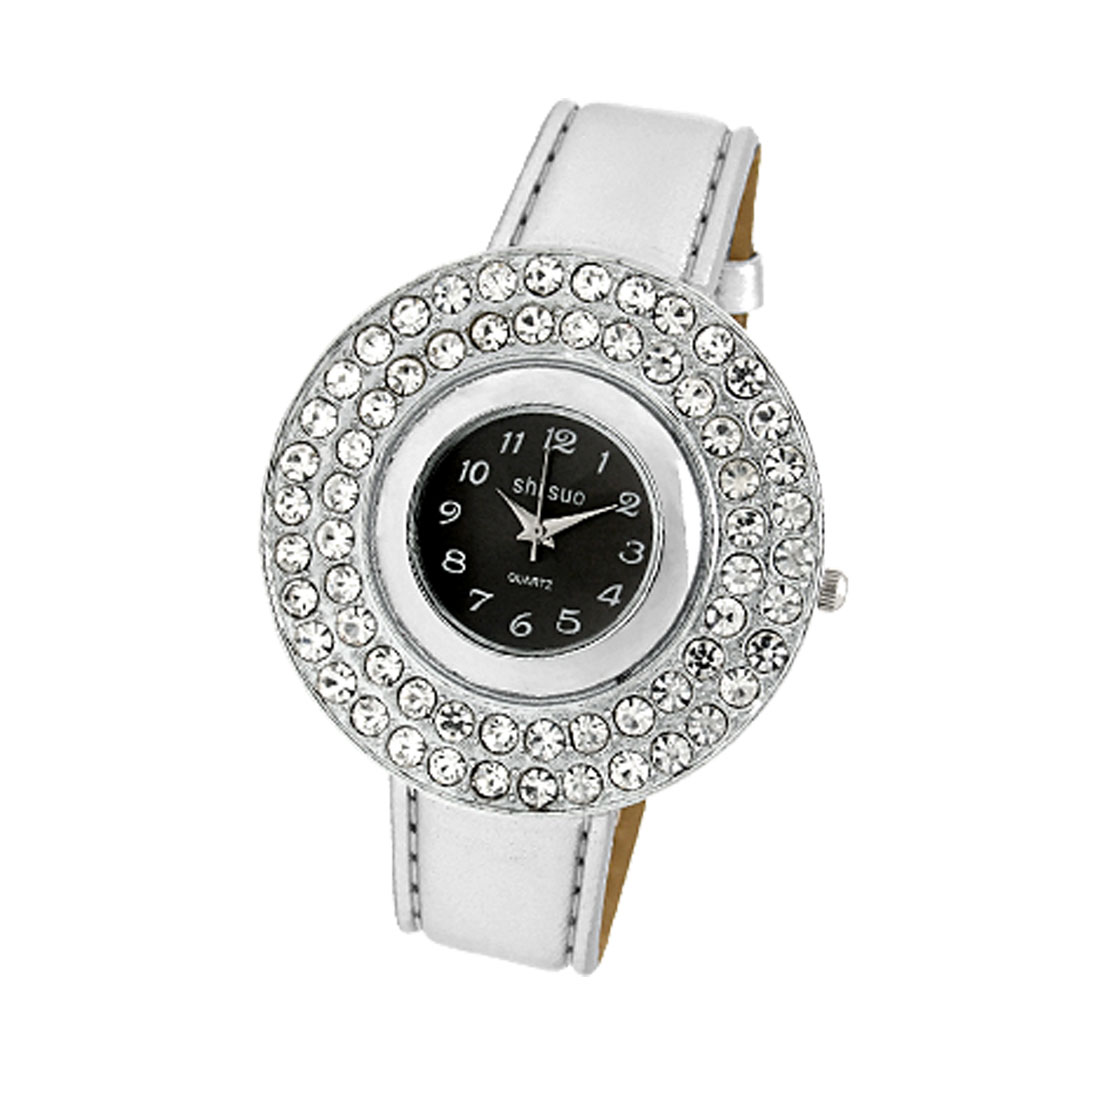 White Leather Strap Rhinestone Round Watch Case Watch